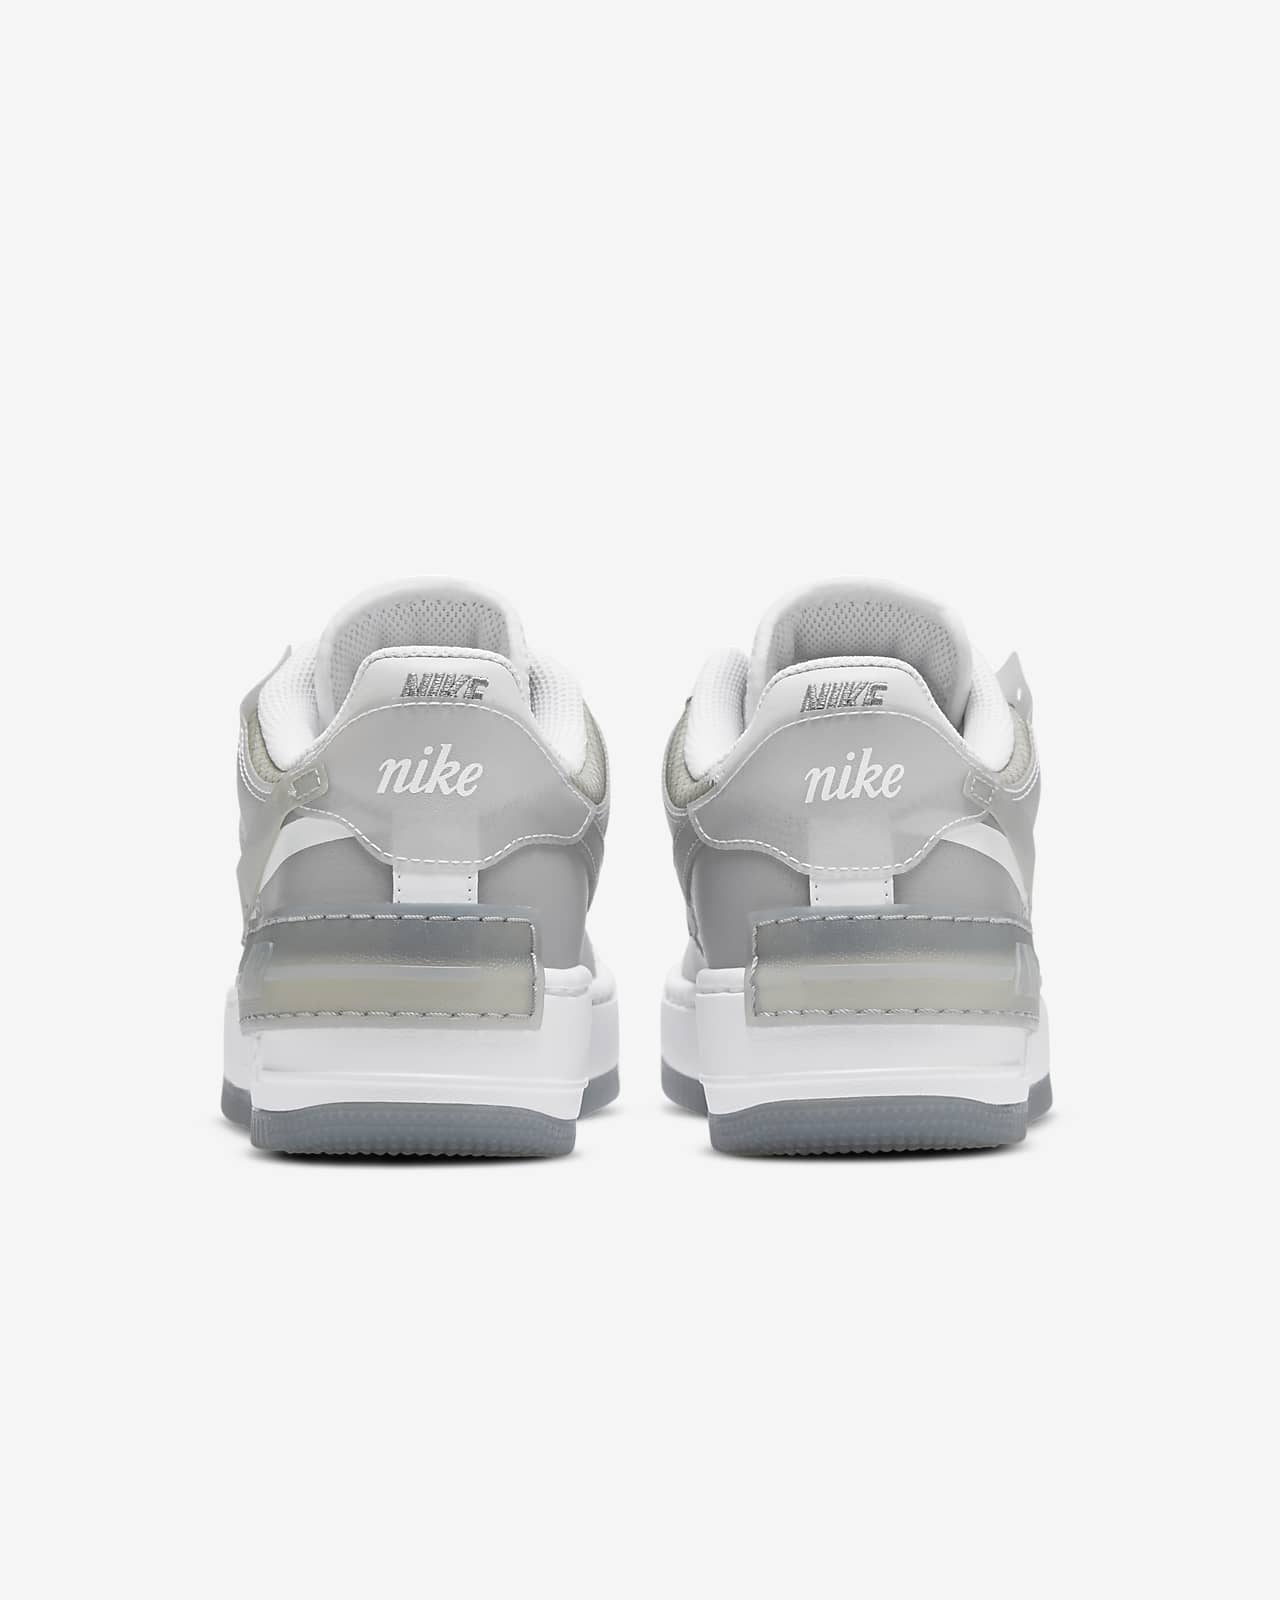 nike air force 1 donna bianche e grigie